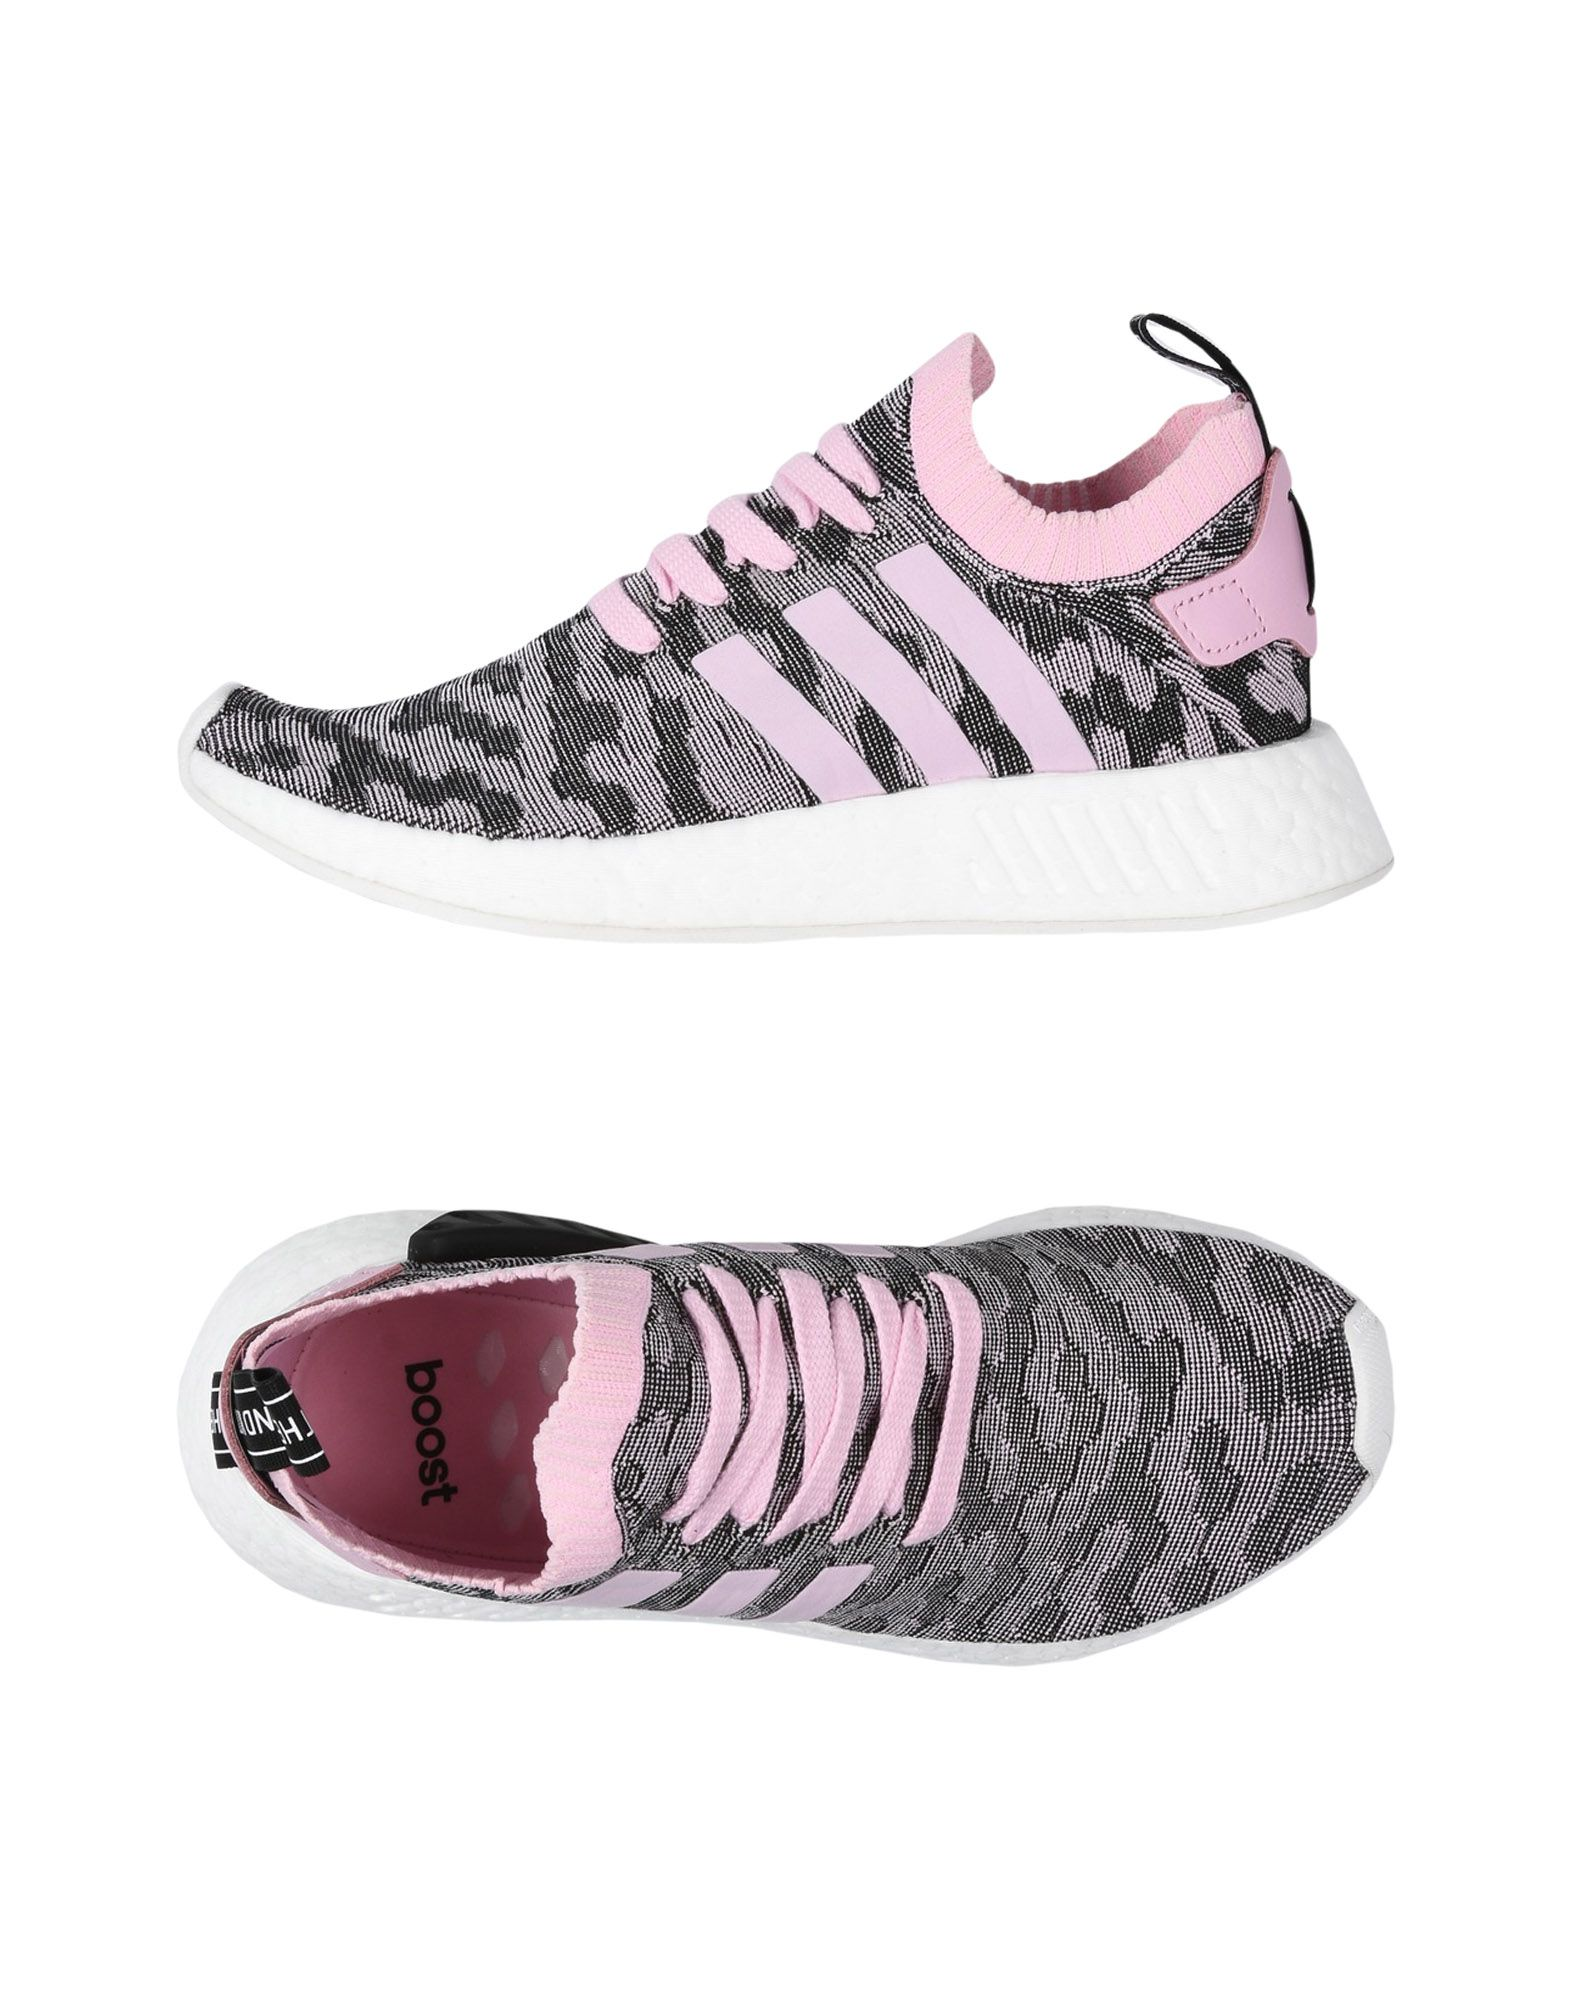 Baskets Adidas Originals Nmd_R2 Pk W - Femme - Baskets Adidas Originals Rose Remise de marque